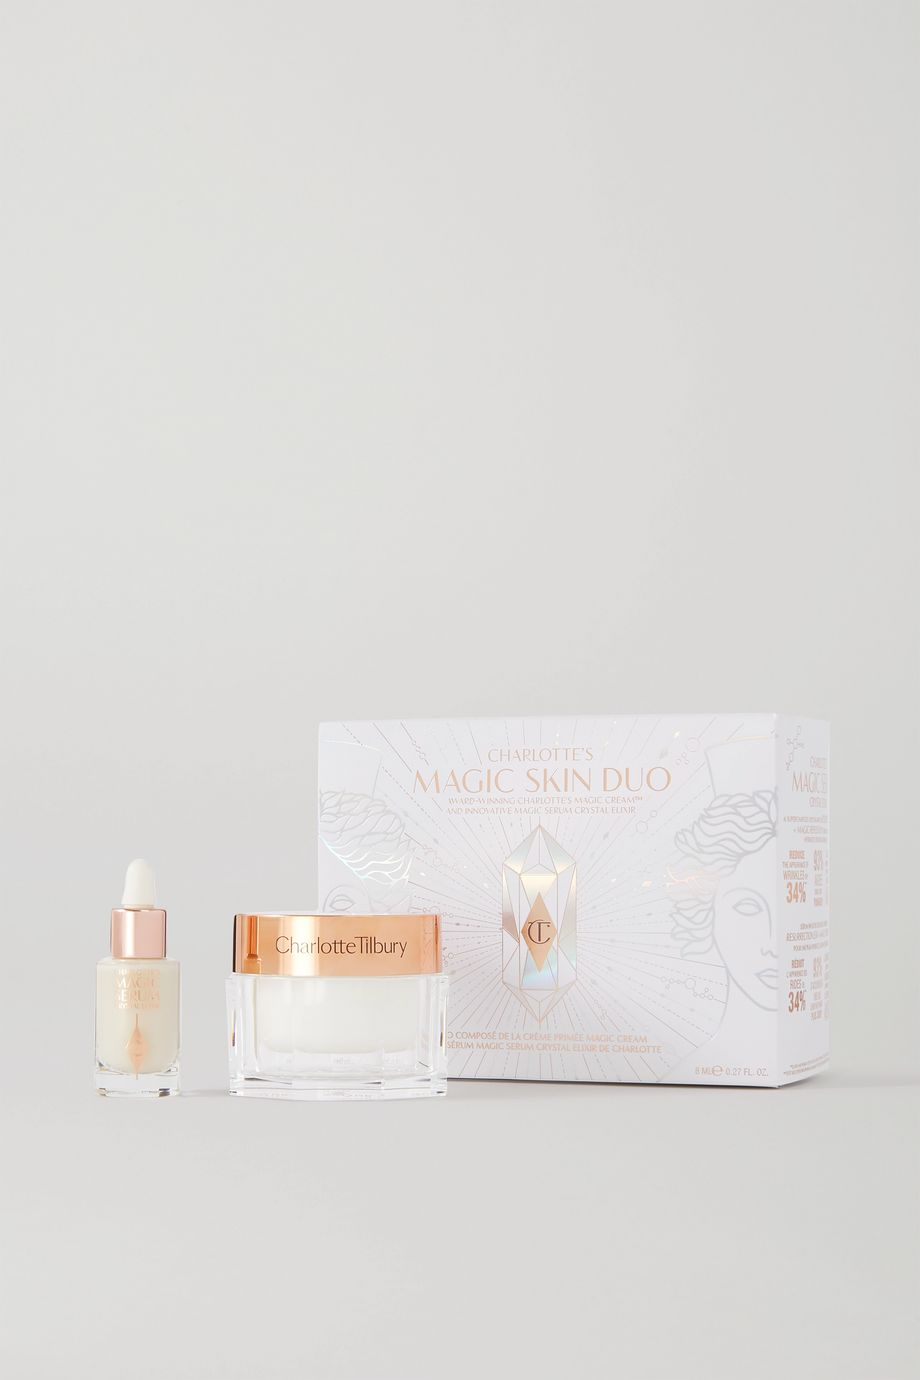 Charlotte Tilbury Magic Skin Duo